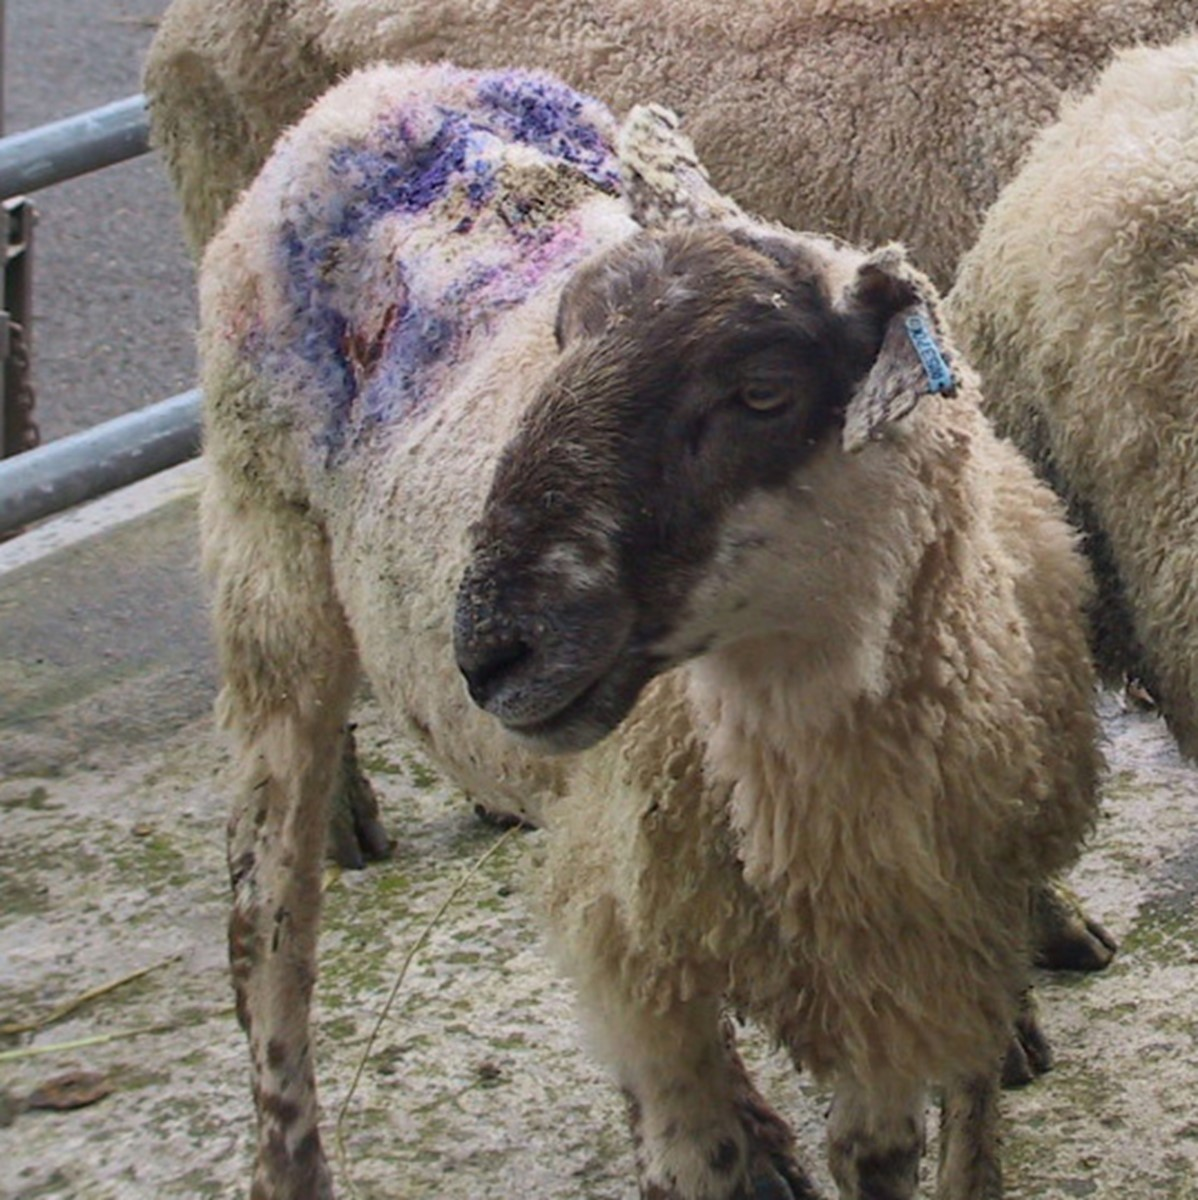 The damage caused by blowfly strike can be extensive. Even with effective treatment, it takes time for wounds to heal, fleece to grow back and condition to be restored.